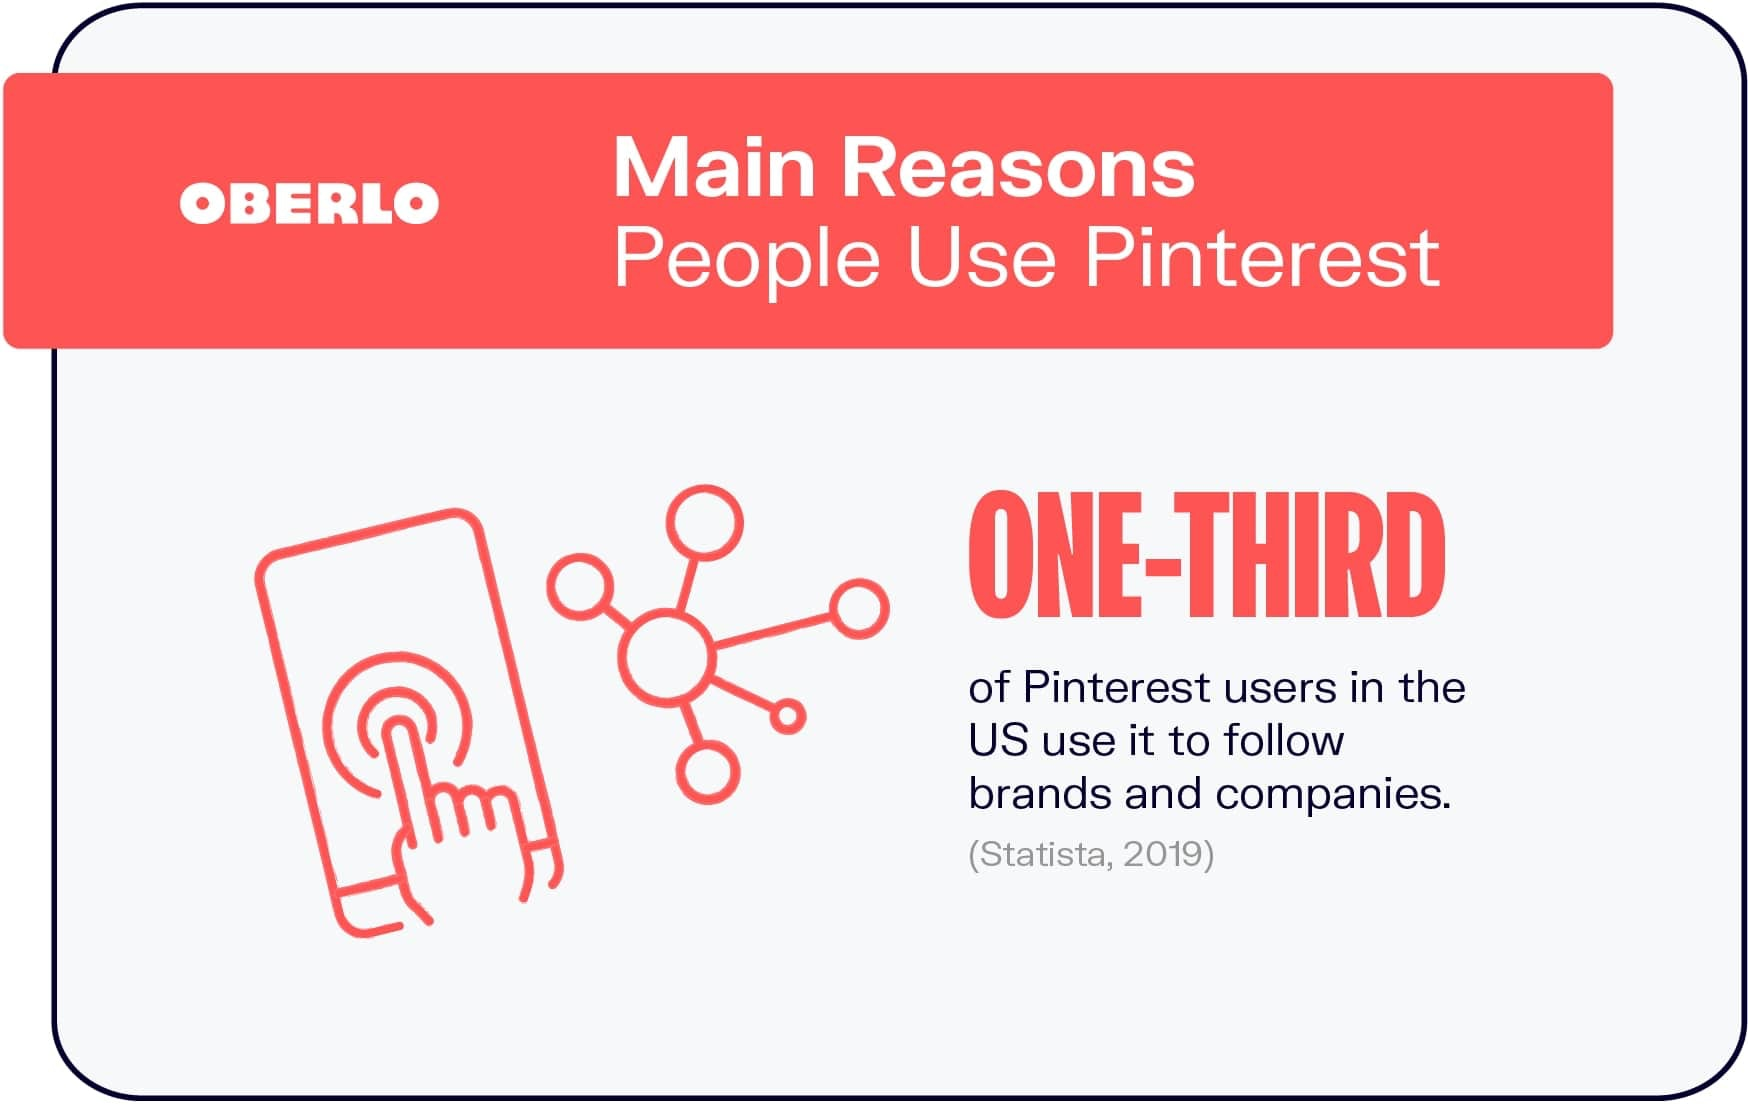 Main Reasons People Use Pinterest